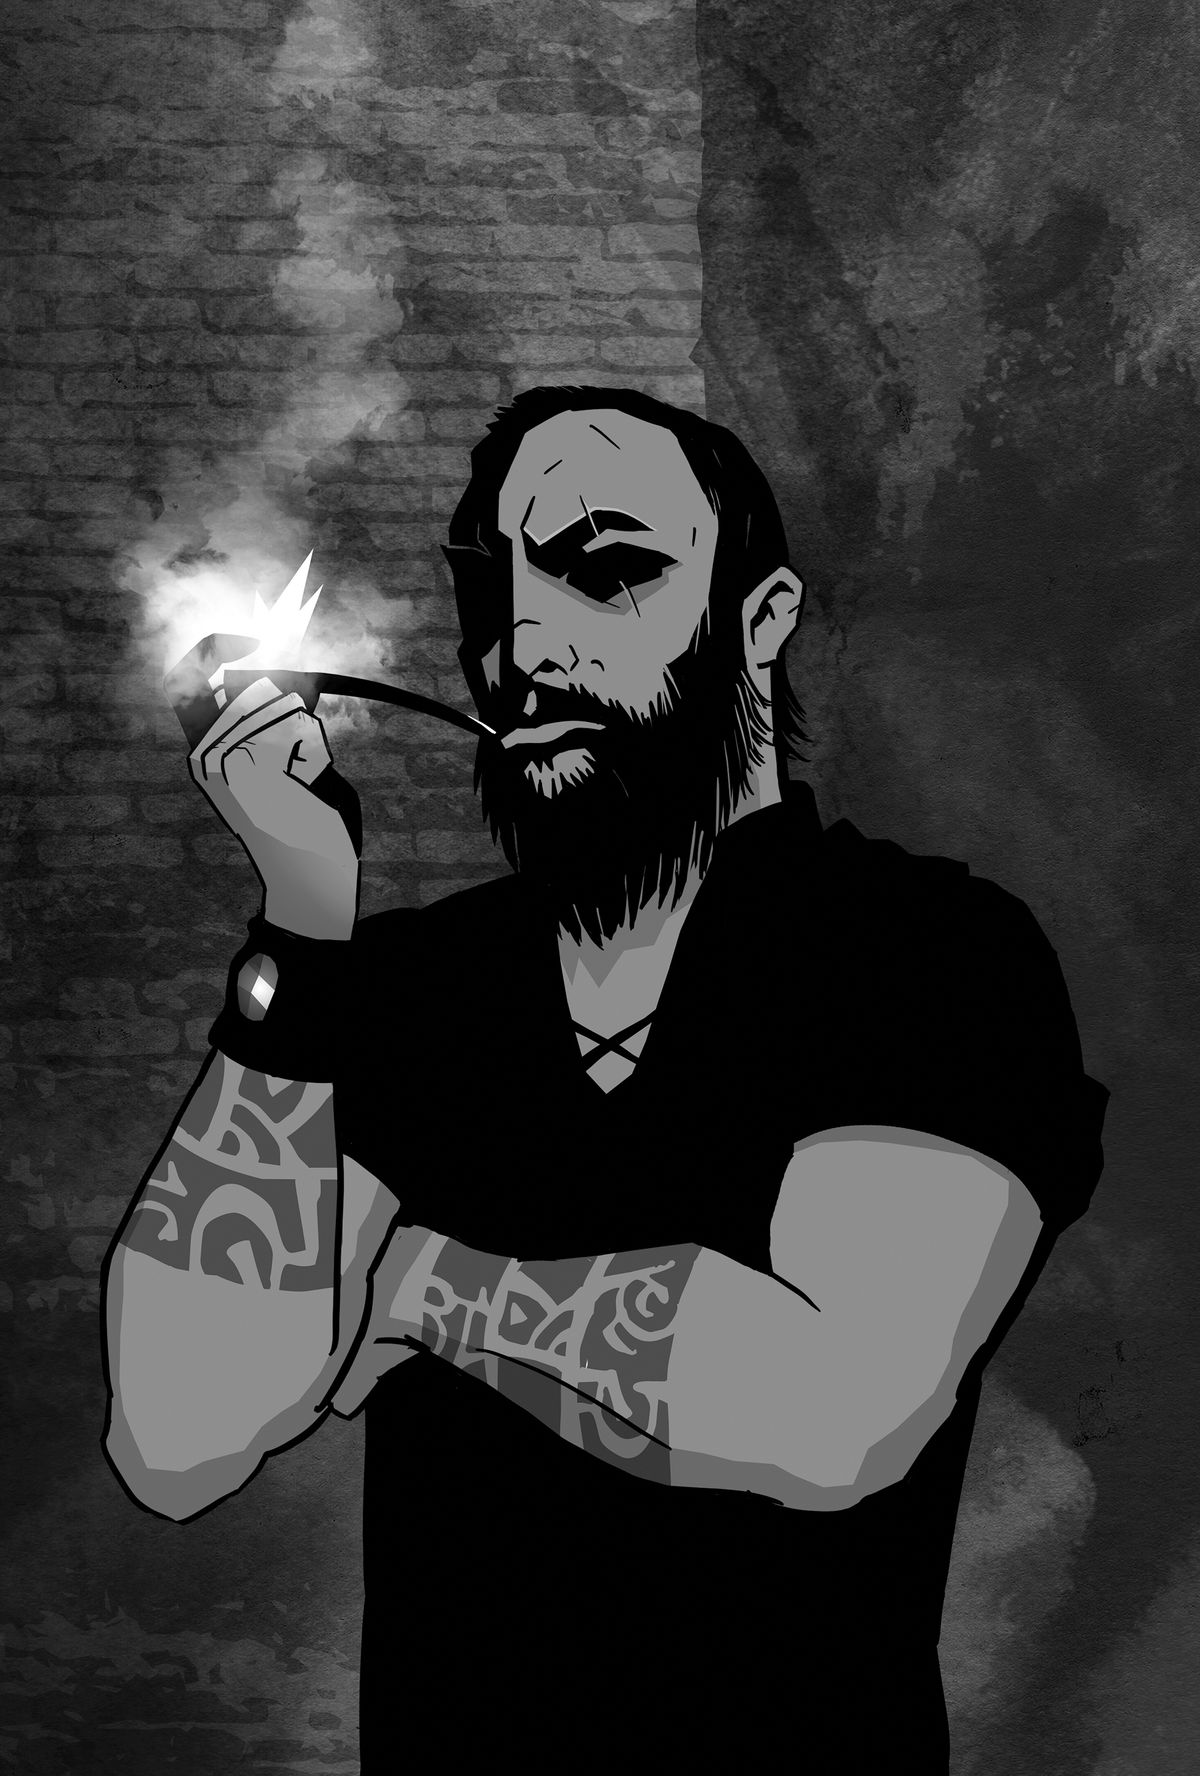 A man with tattoos on both wrists smokes a pipe.